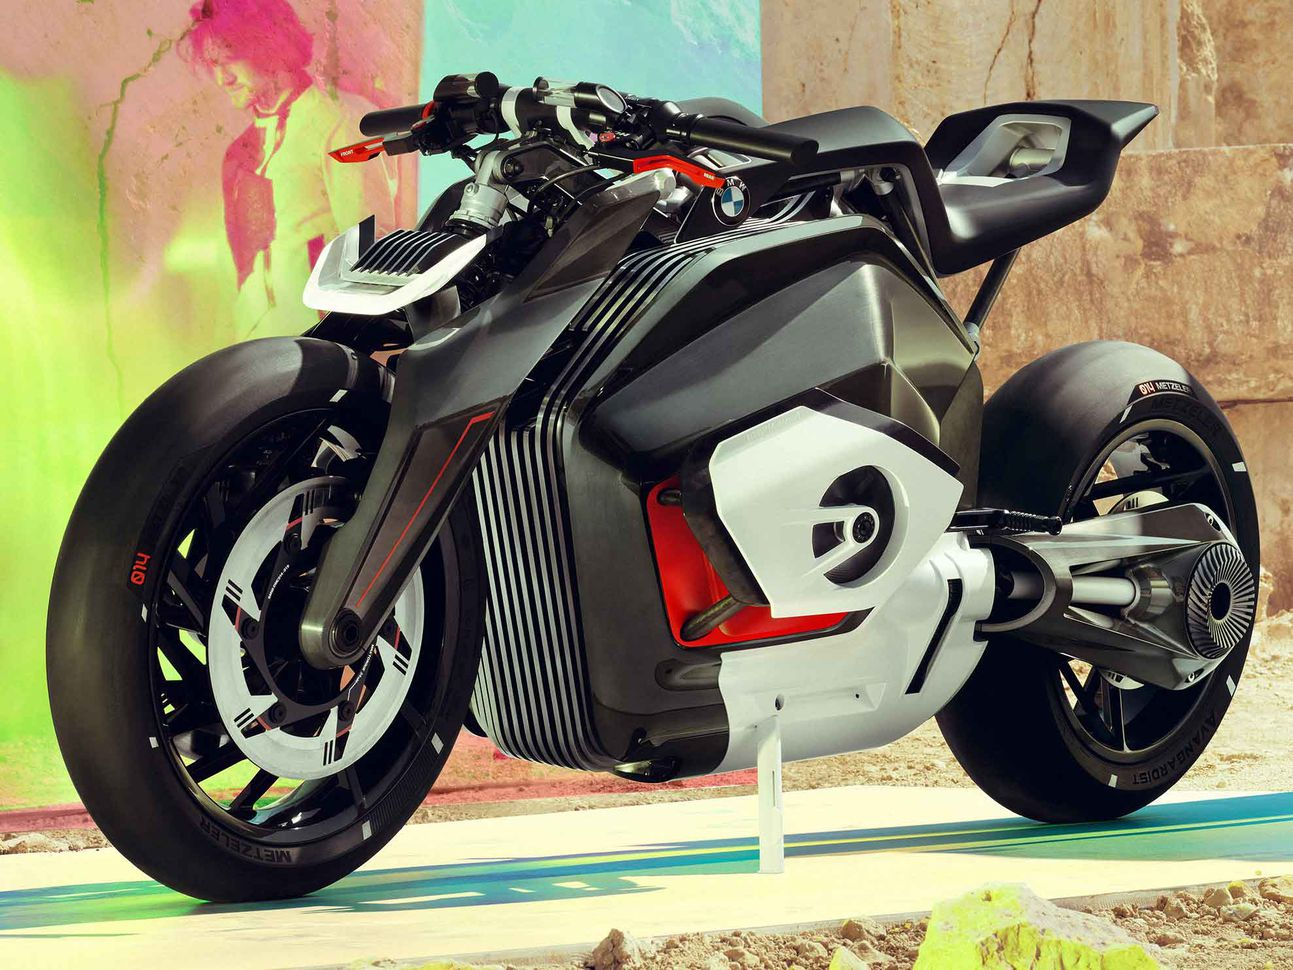 Schramm says BMW may have an electric motorcycle in five years for urban environments. He is unsure about the viability of off-road and sport models.